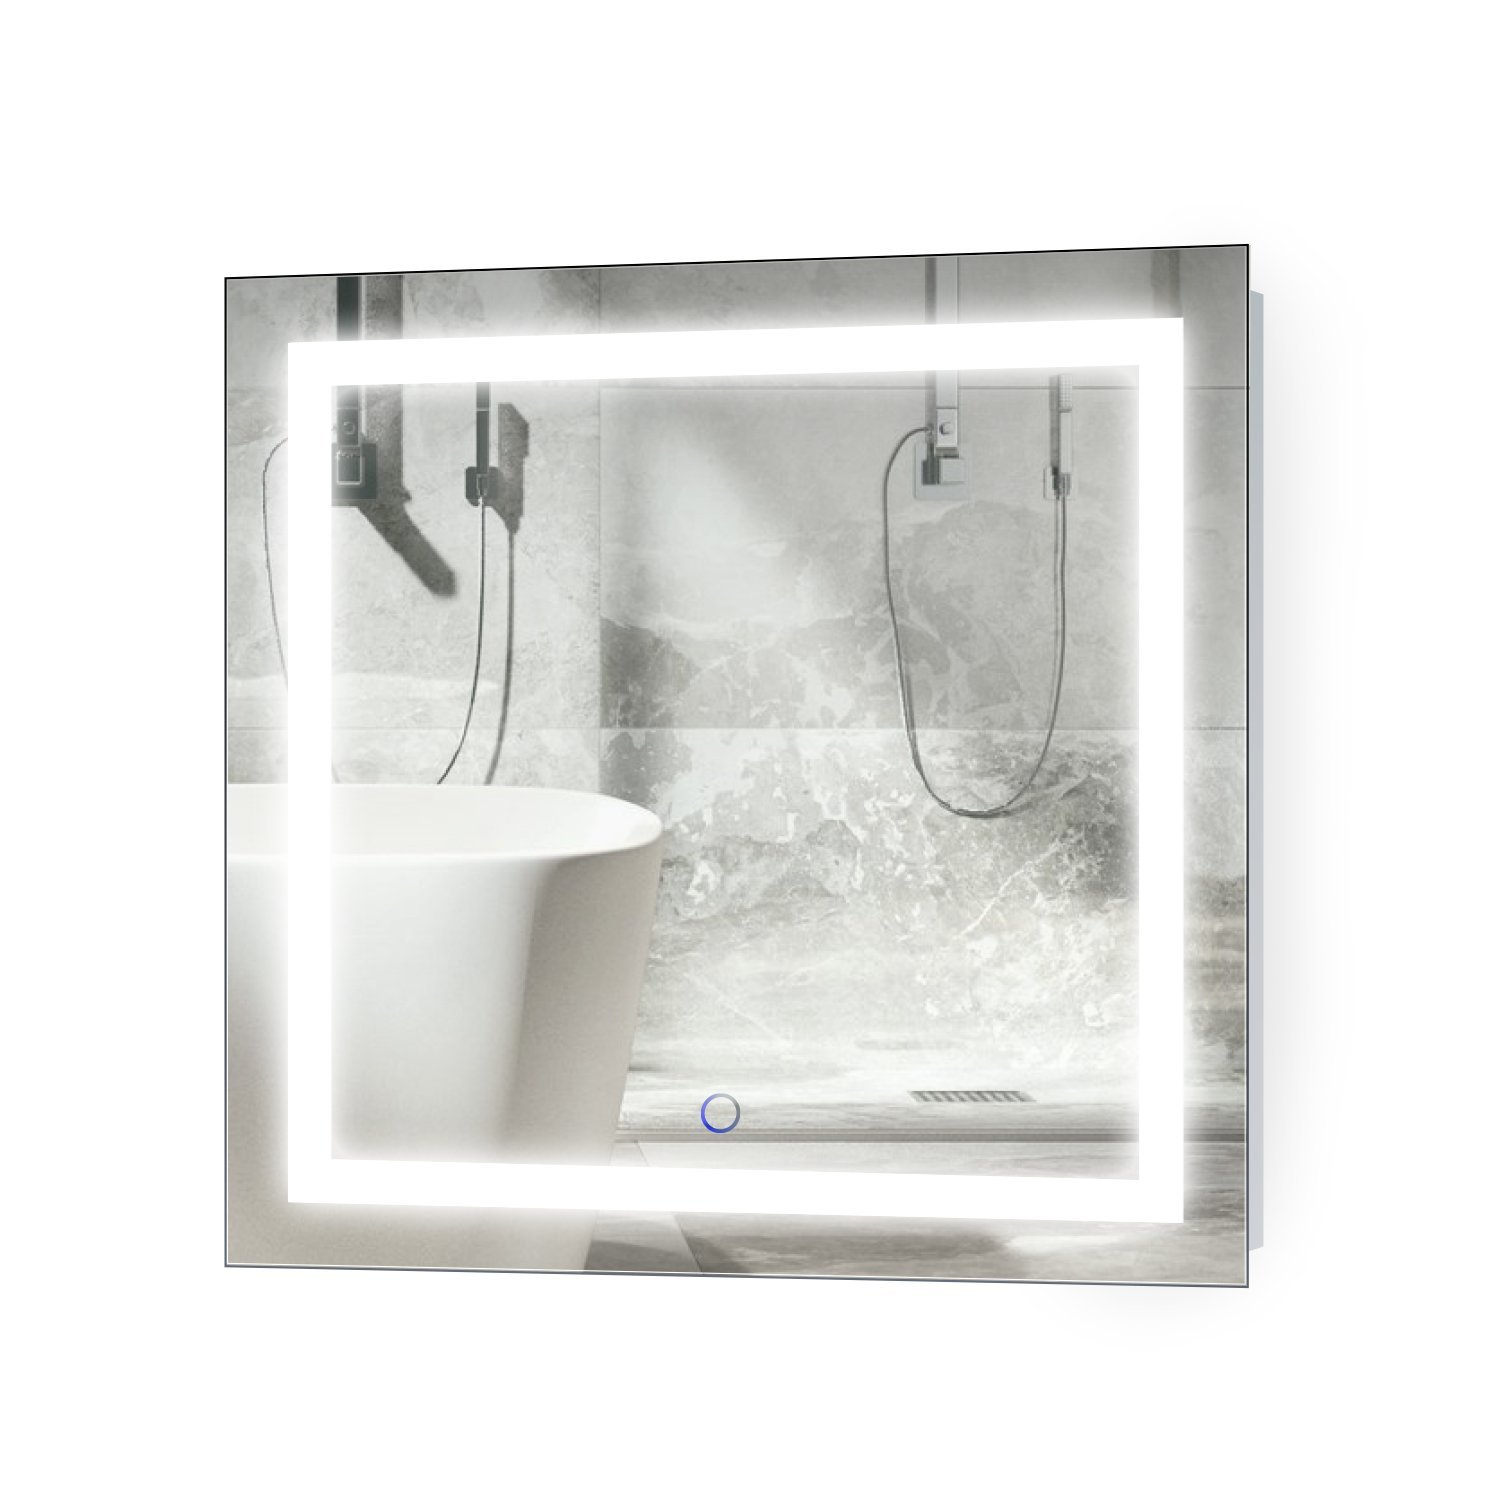 Krugg LED Bathroom Mirror 24 Inch X 24 Inch Square Lighted Vanity Mirror Includes Defogger Dimmer